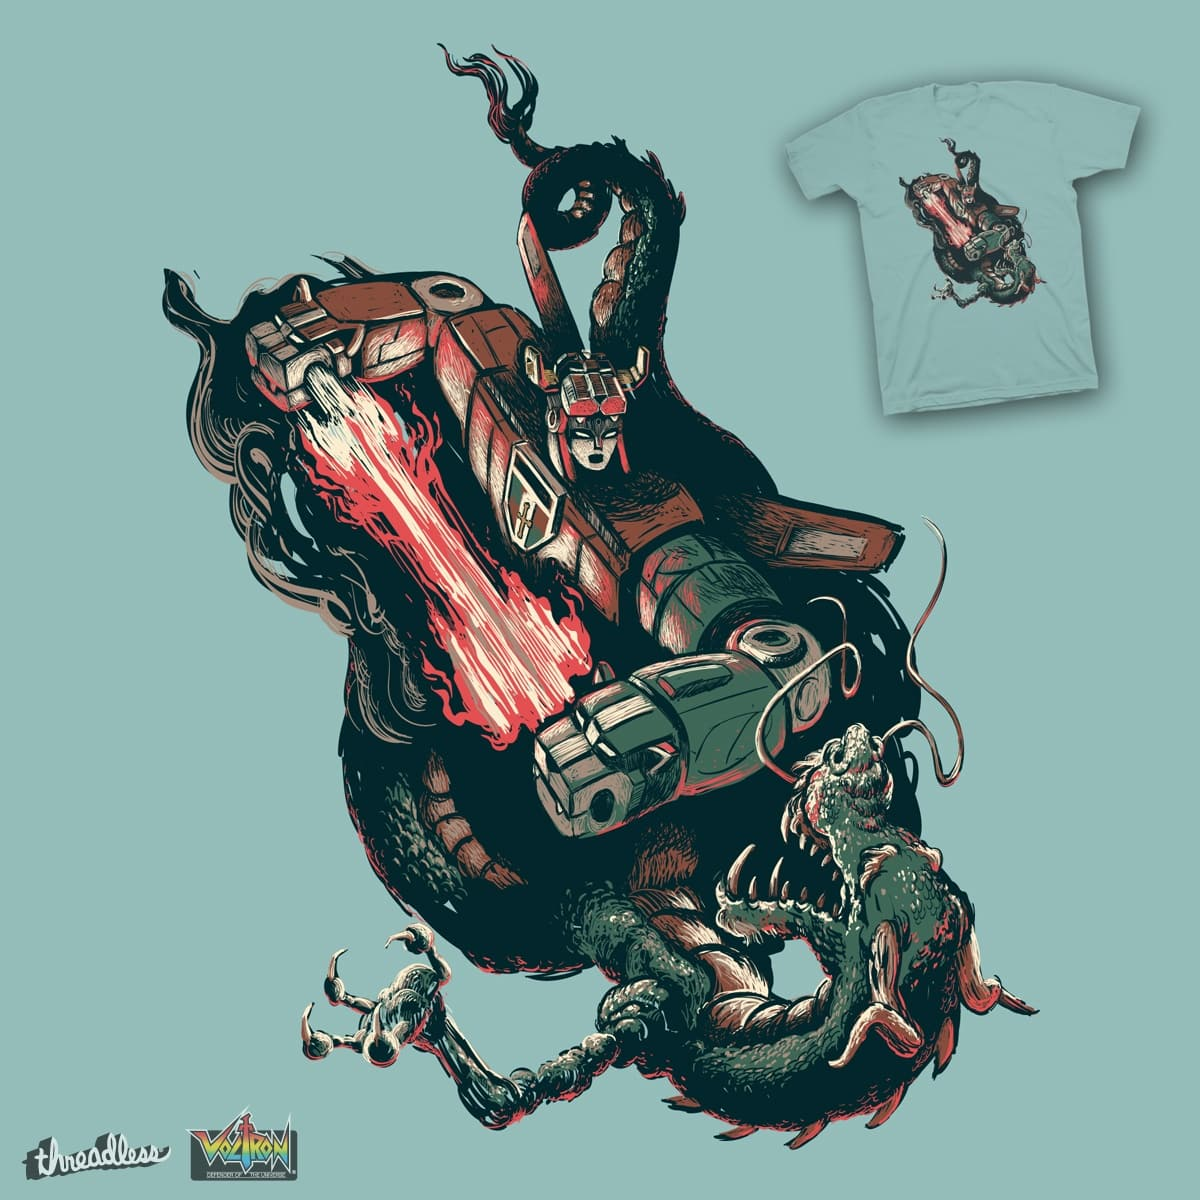 Blazing Battle by ndanzi on Threadless